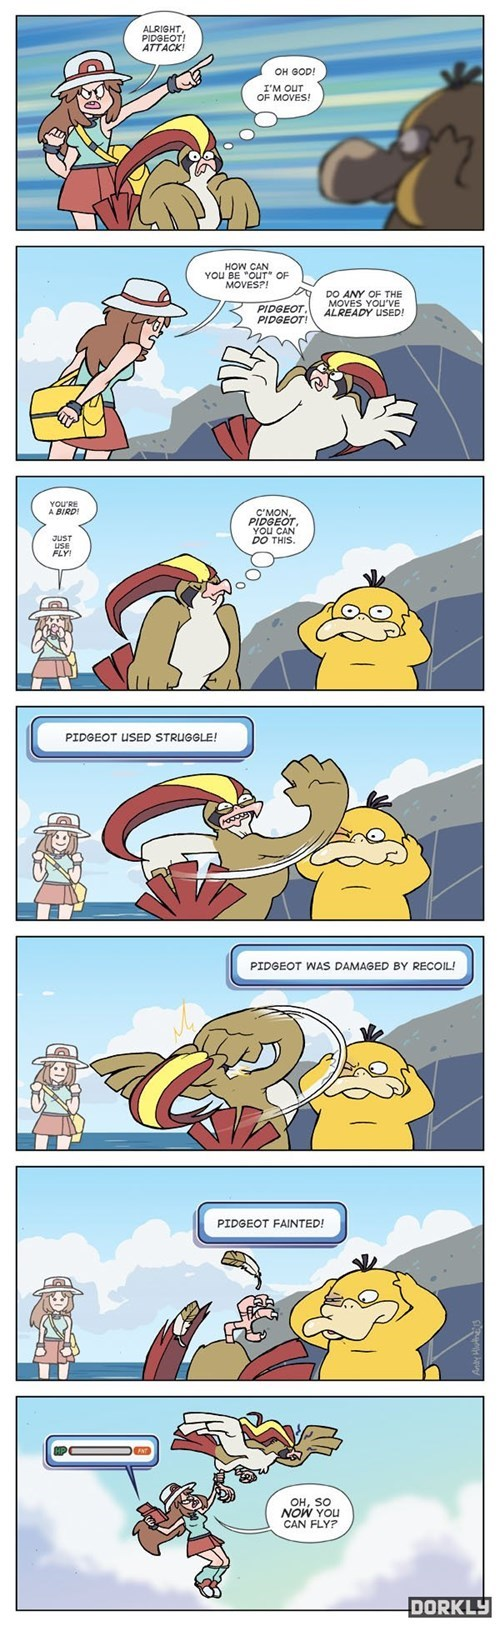 Pokémon,dorkly,pidgeot,web comics